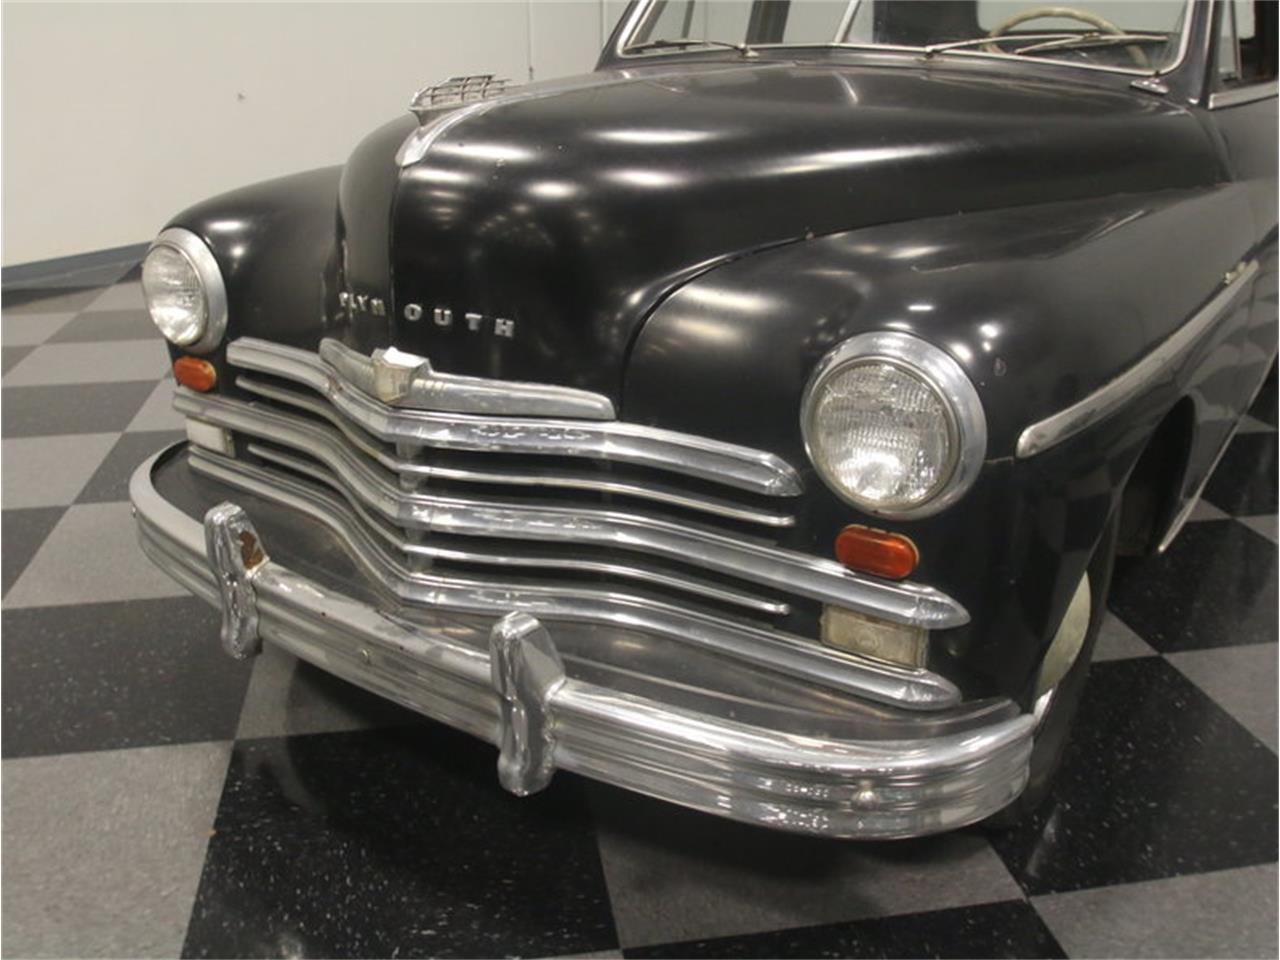 Large Picture of '49 Plymouth Special Deluxe - $8,995.00 - L551